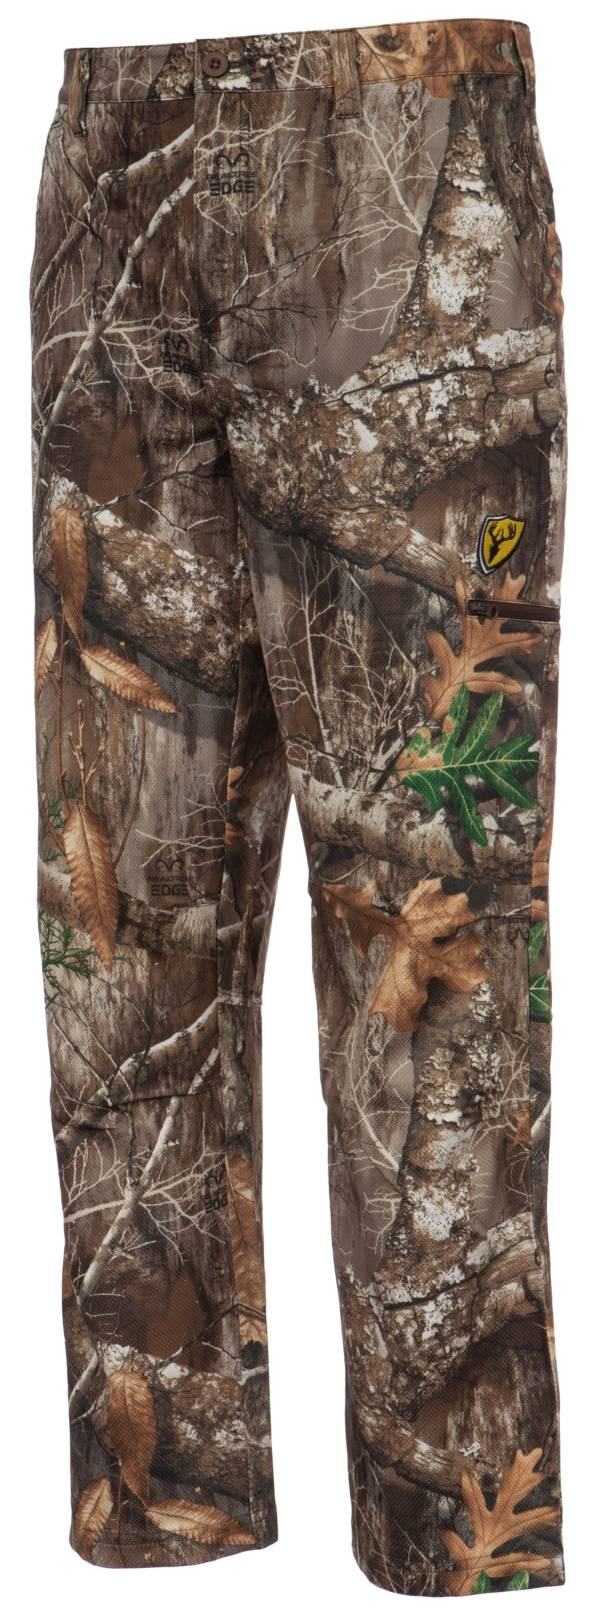 Blocker Outdoors Men's Shield Series Angatec Pants product image